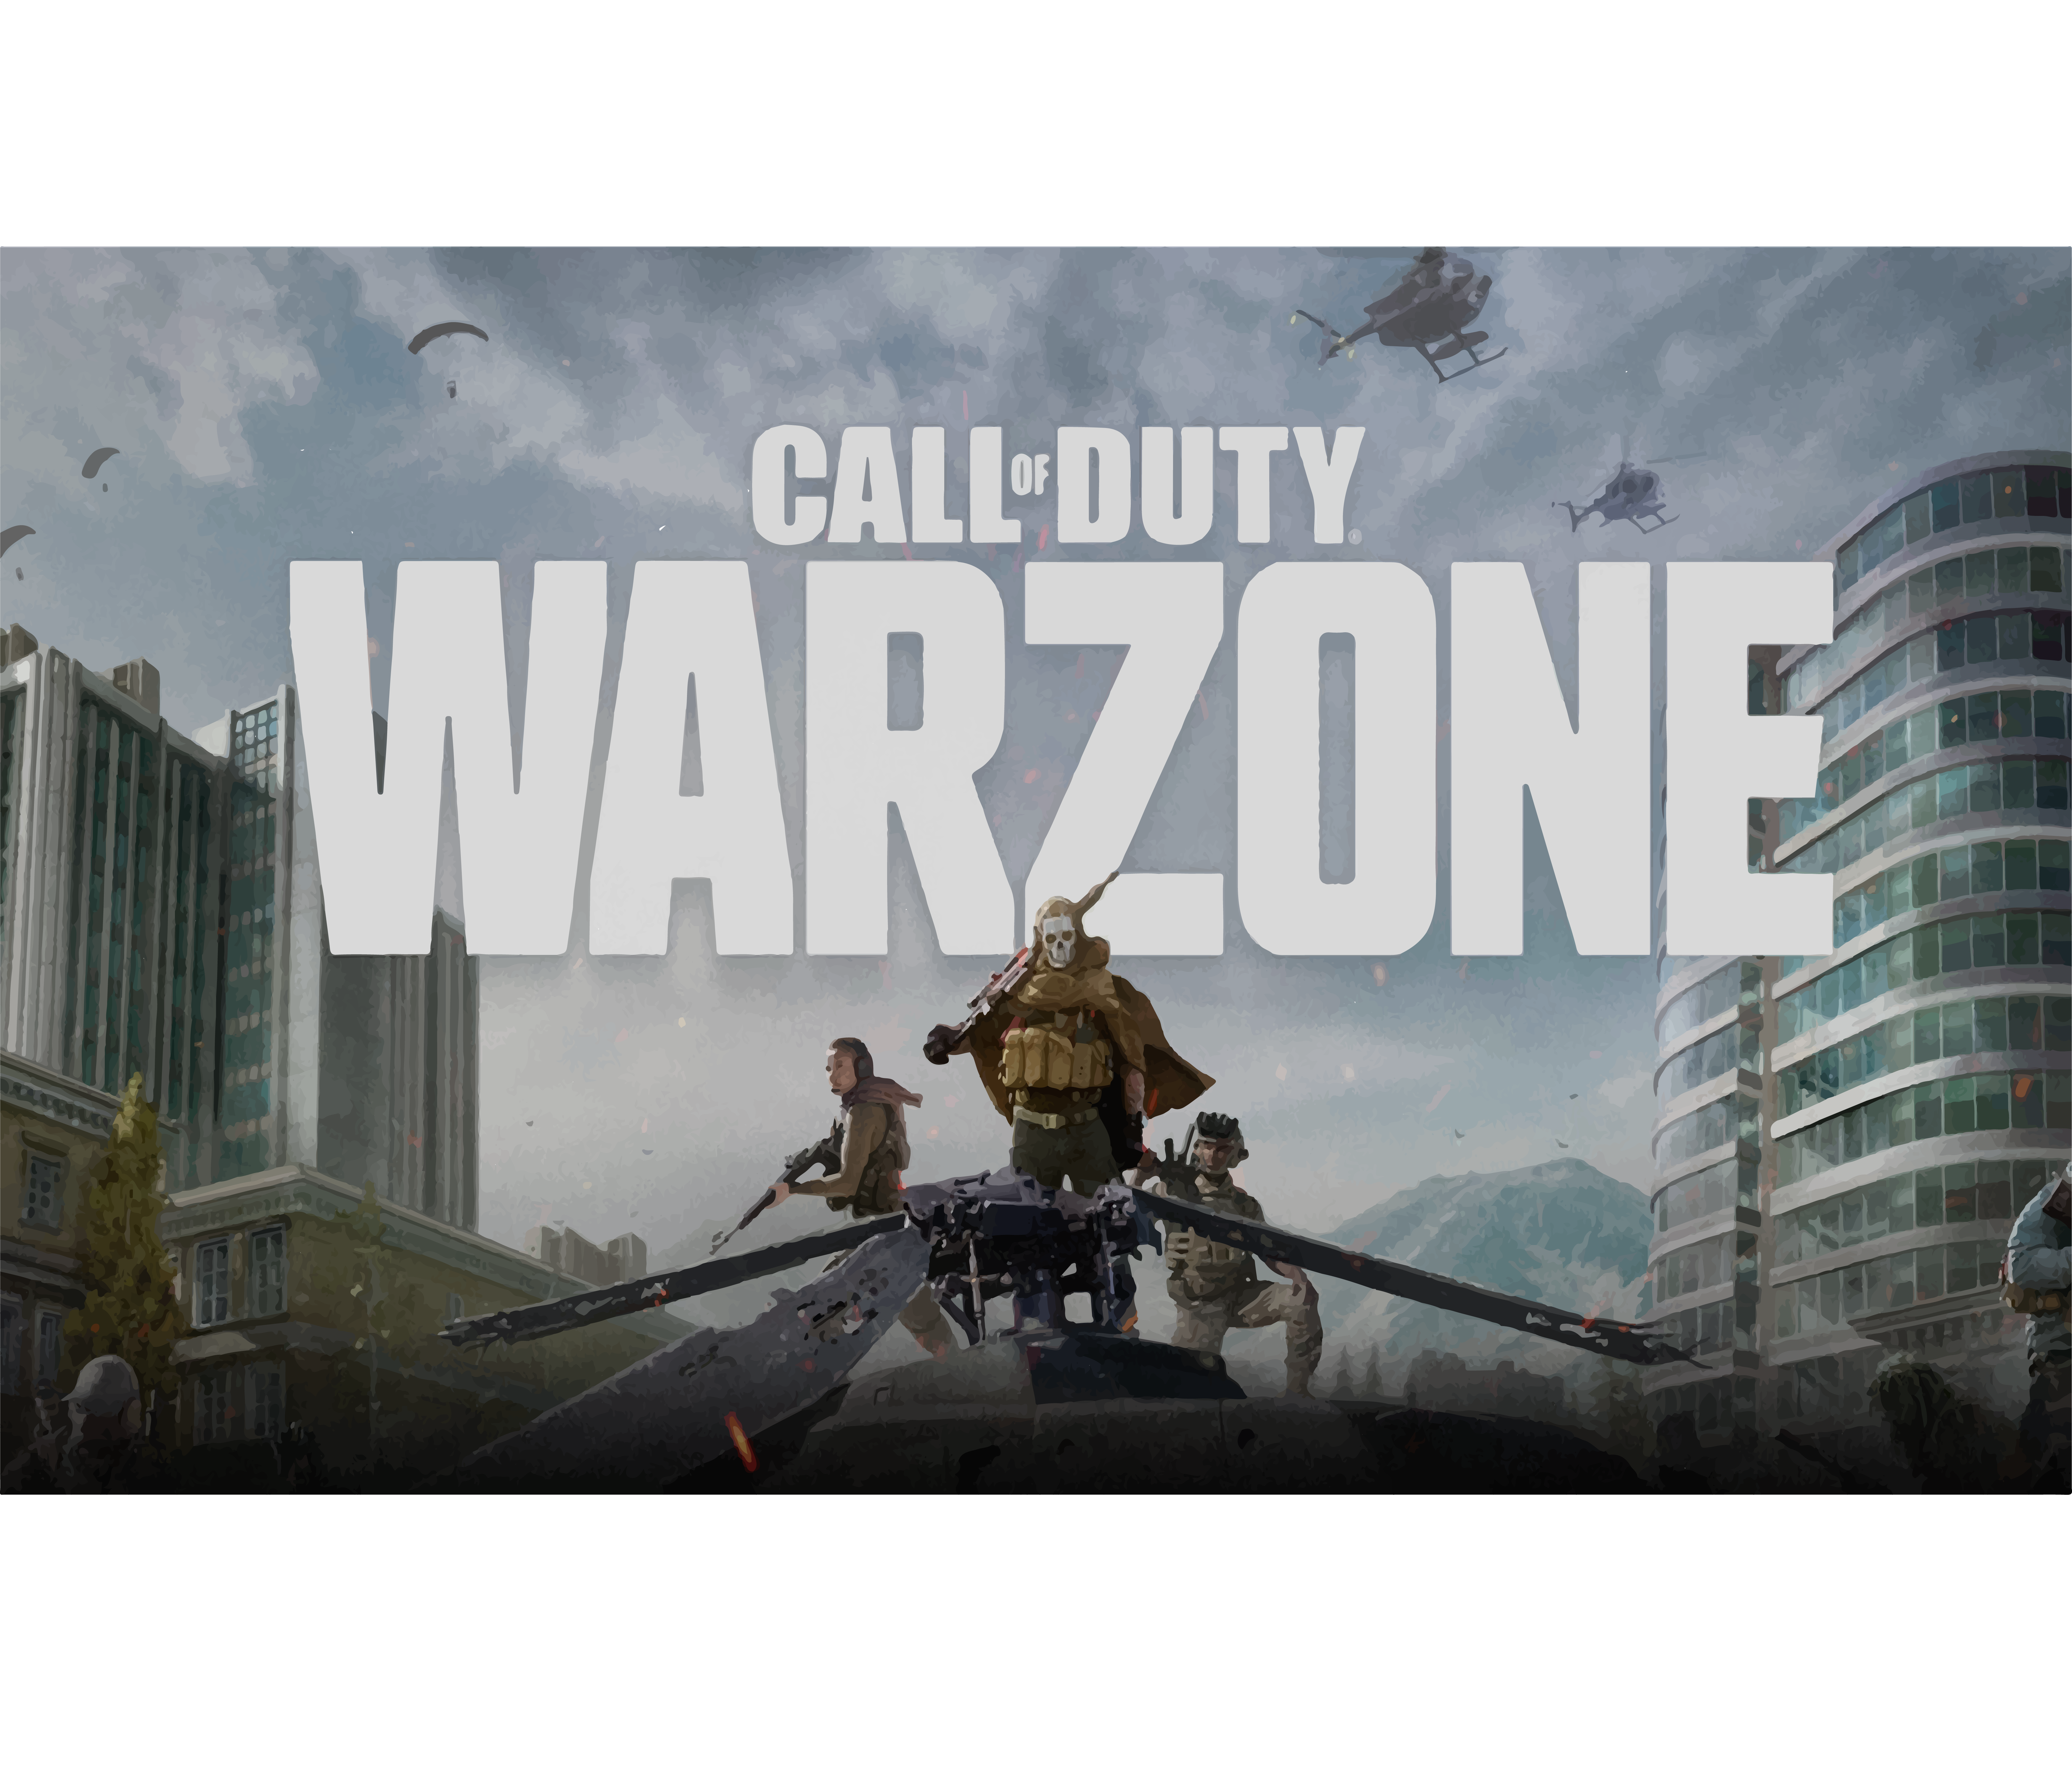 Call Of Duty Warzone Poster Call Of Duty Warzone Call Of Duty Warzone Call Of Duty Warzone Logo Call Of Duty In 2020 Call Of Duty Activision Best Android Games